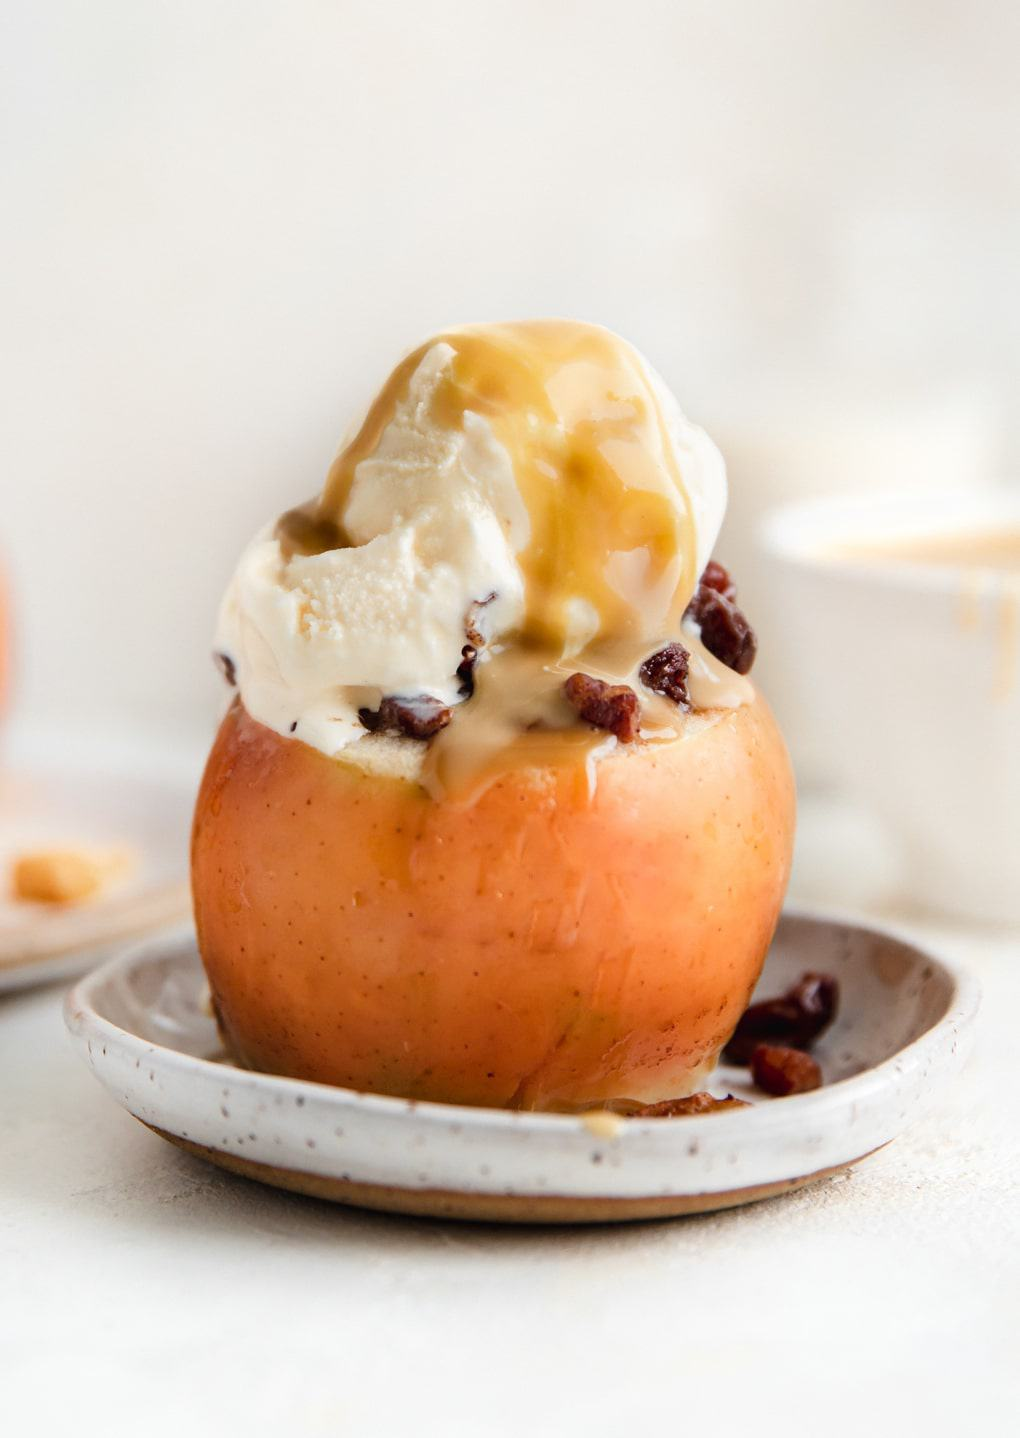 Slow cooker baked apples with ice cream and caramel.